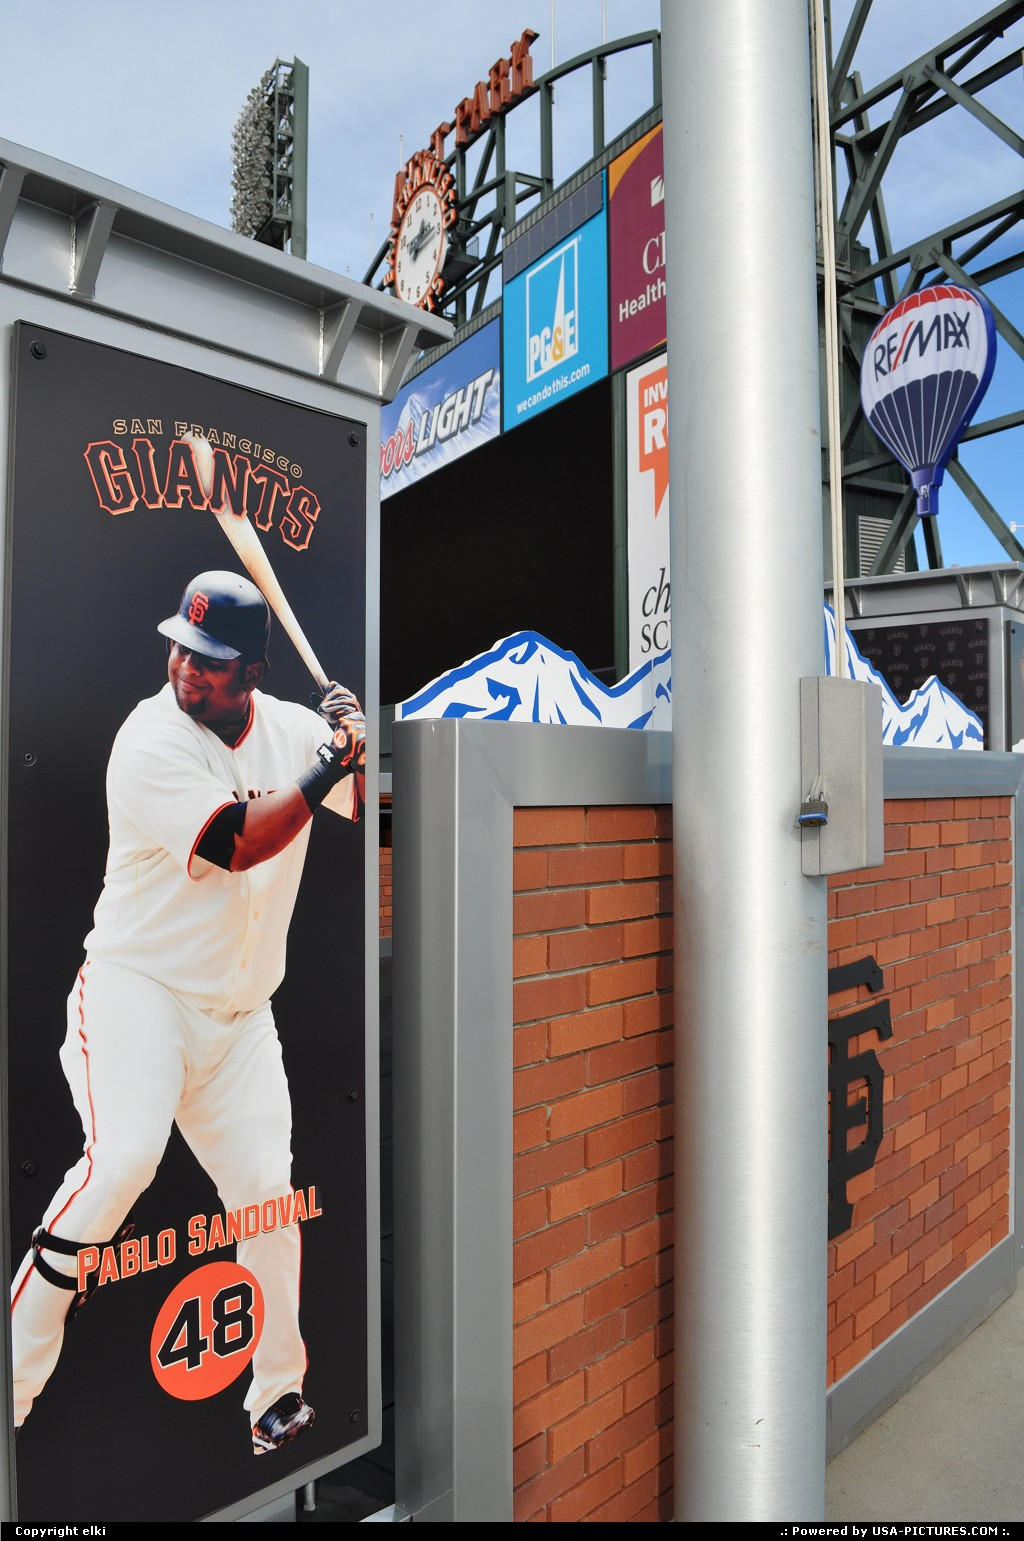 Picture by elki:San FranciscoCaliforniaat&t park, giants